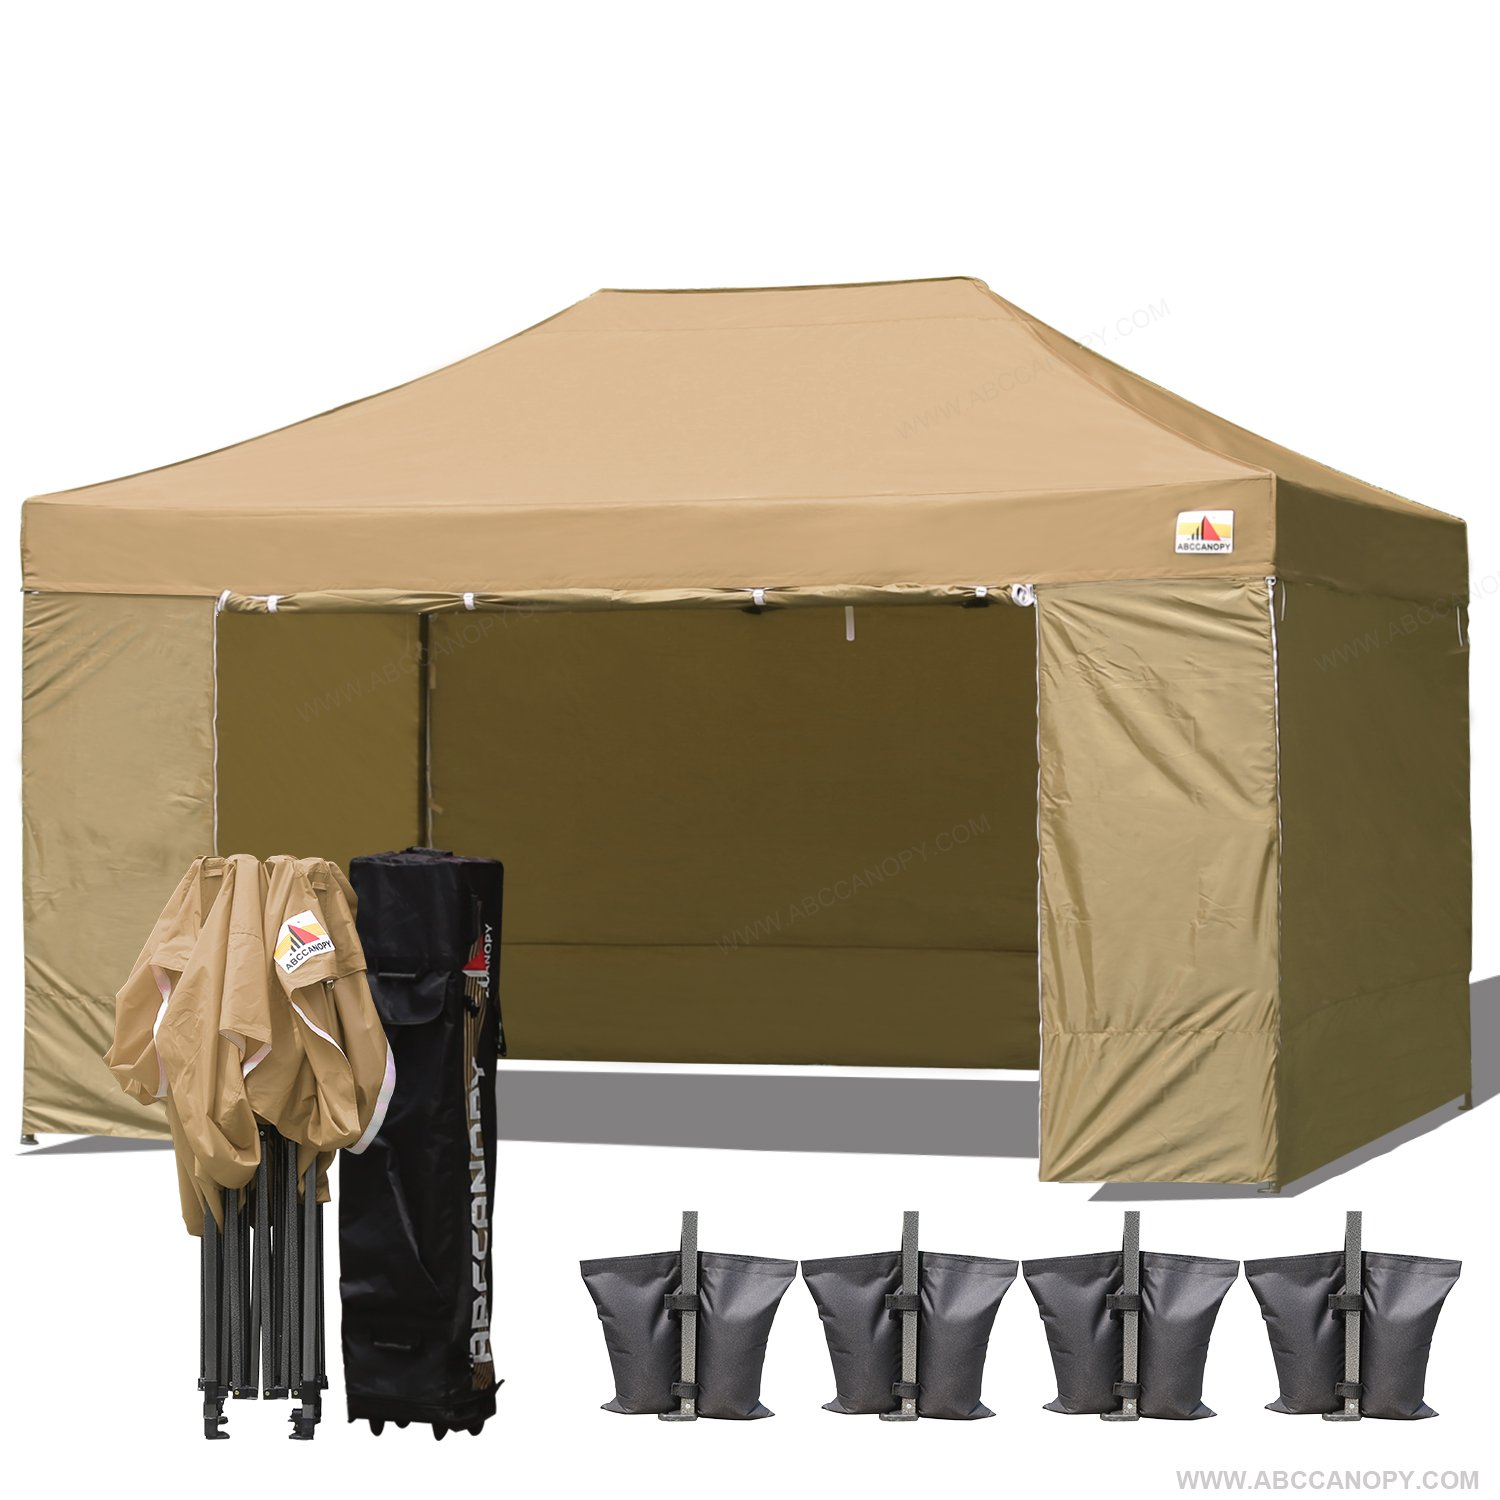 (18+ colors)Abccanopy Deluxe 10x15 Pop up Canopy Outdoor Party Tent Commercial Gazebo with Enclosure Walls and Wheeled Carry Bag Bonus 4x Weight Bag and 2x Half Walls (beige)